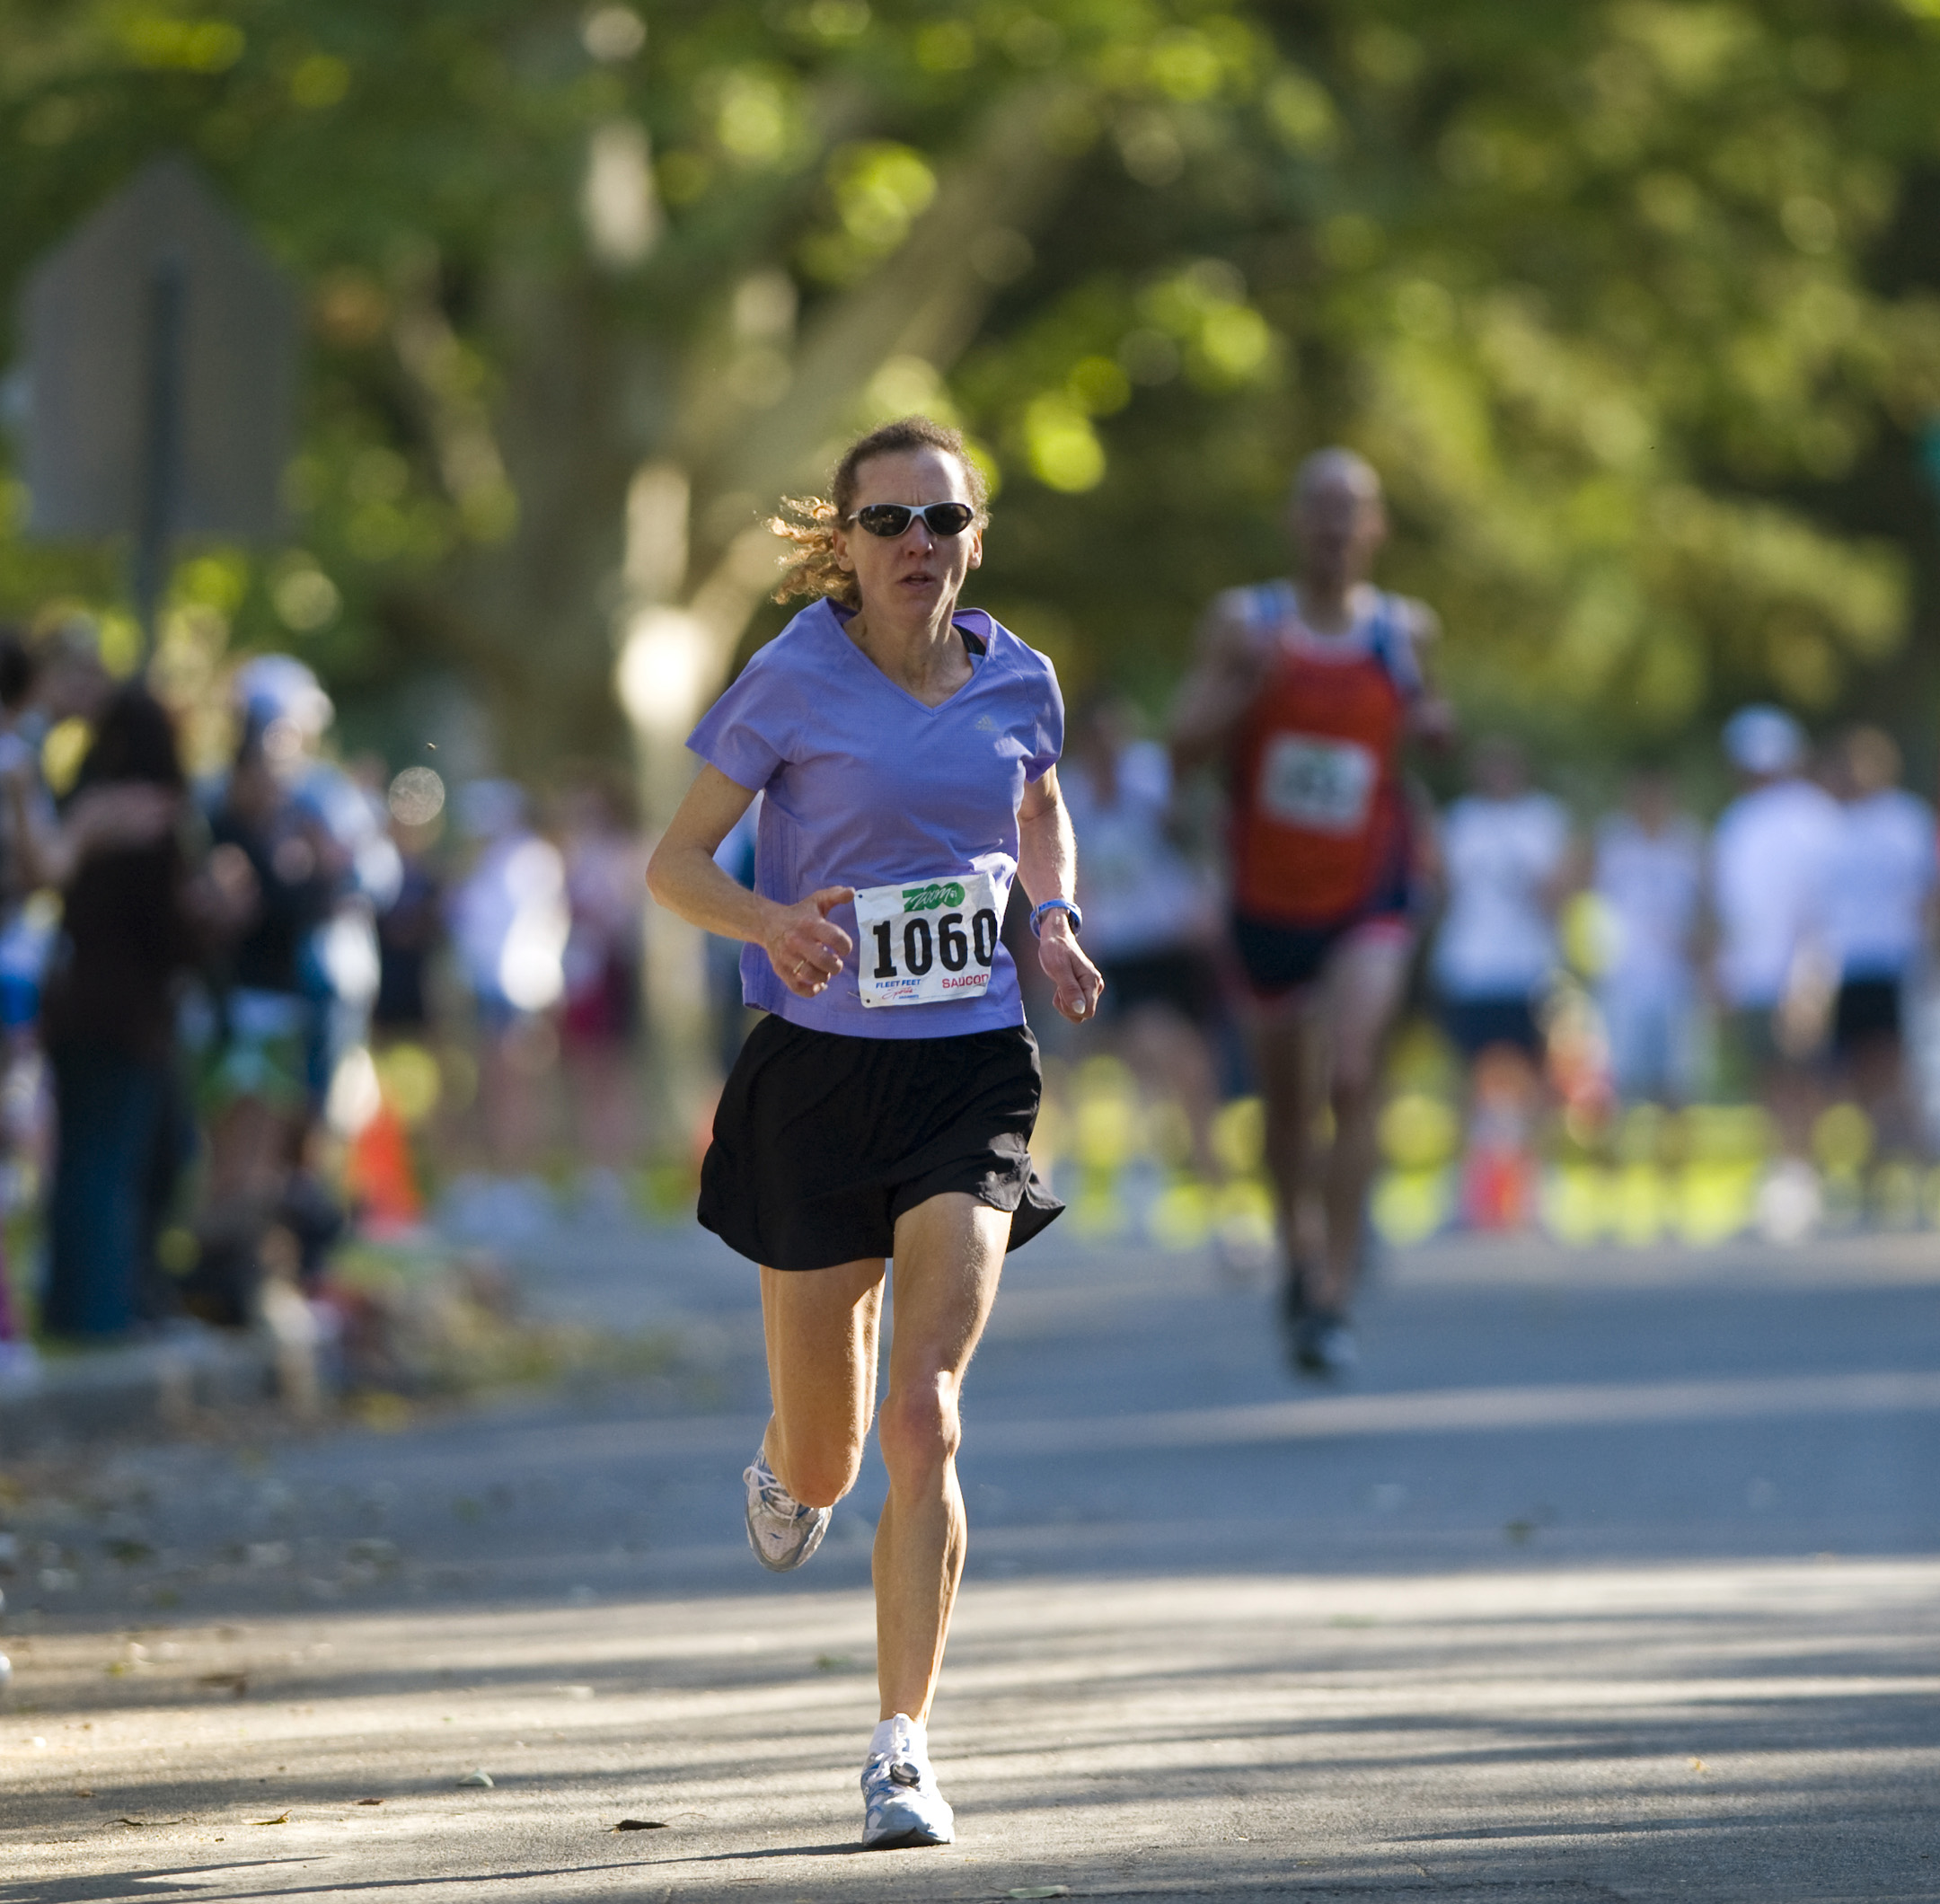 Mary Coordt, of Elk Grove, finishes second among woman in the Zoo Zoom 5K Race at William Land Park in Sacramento, California in this April, 2008 file...